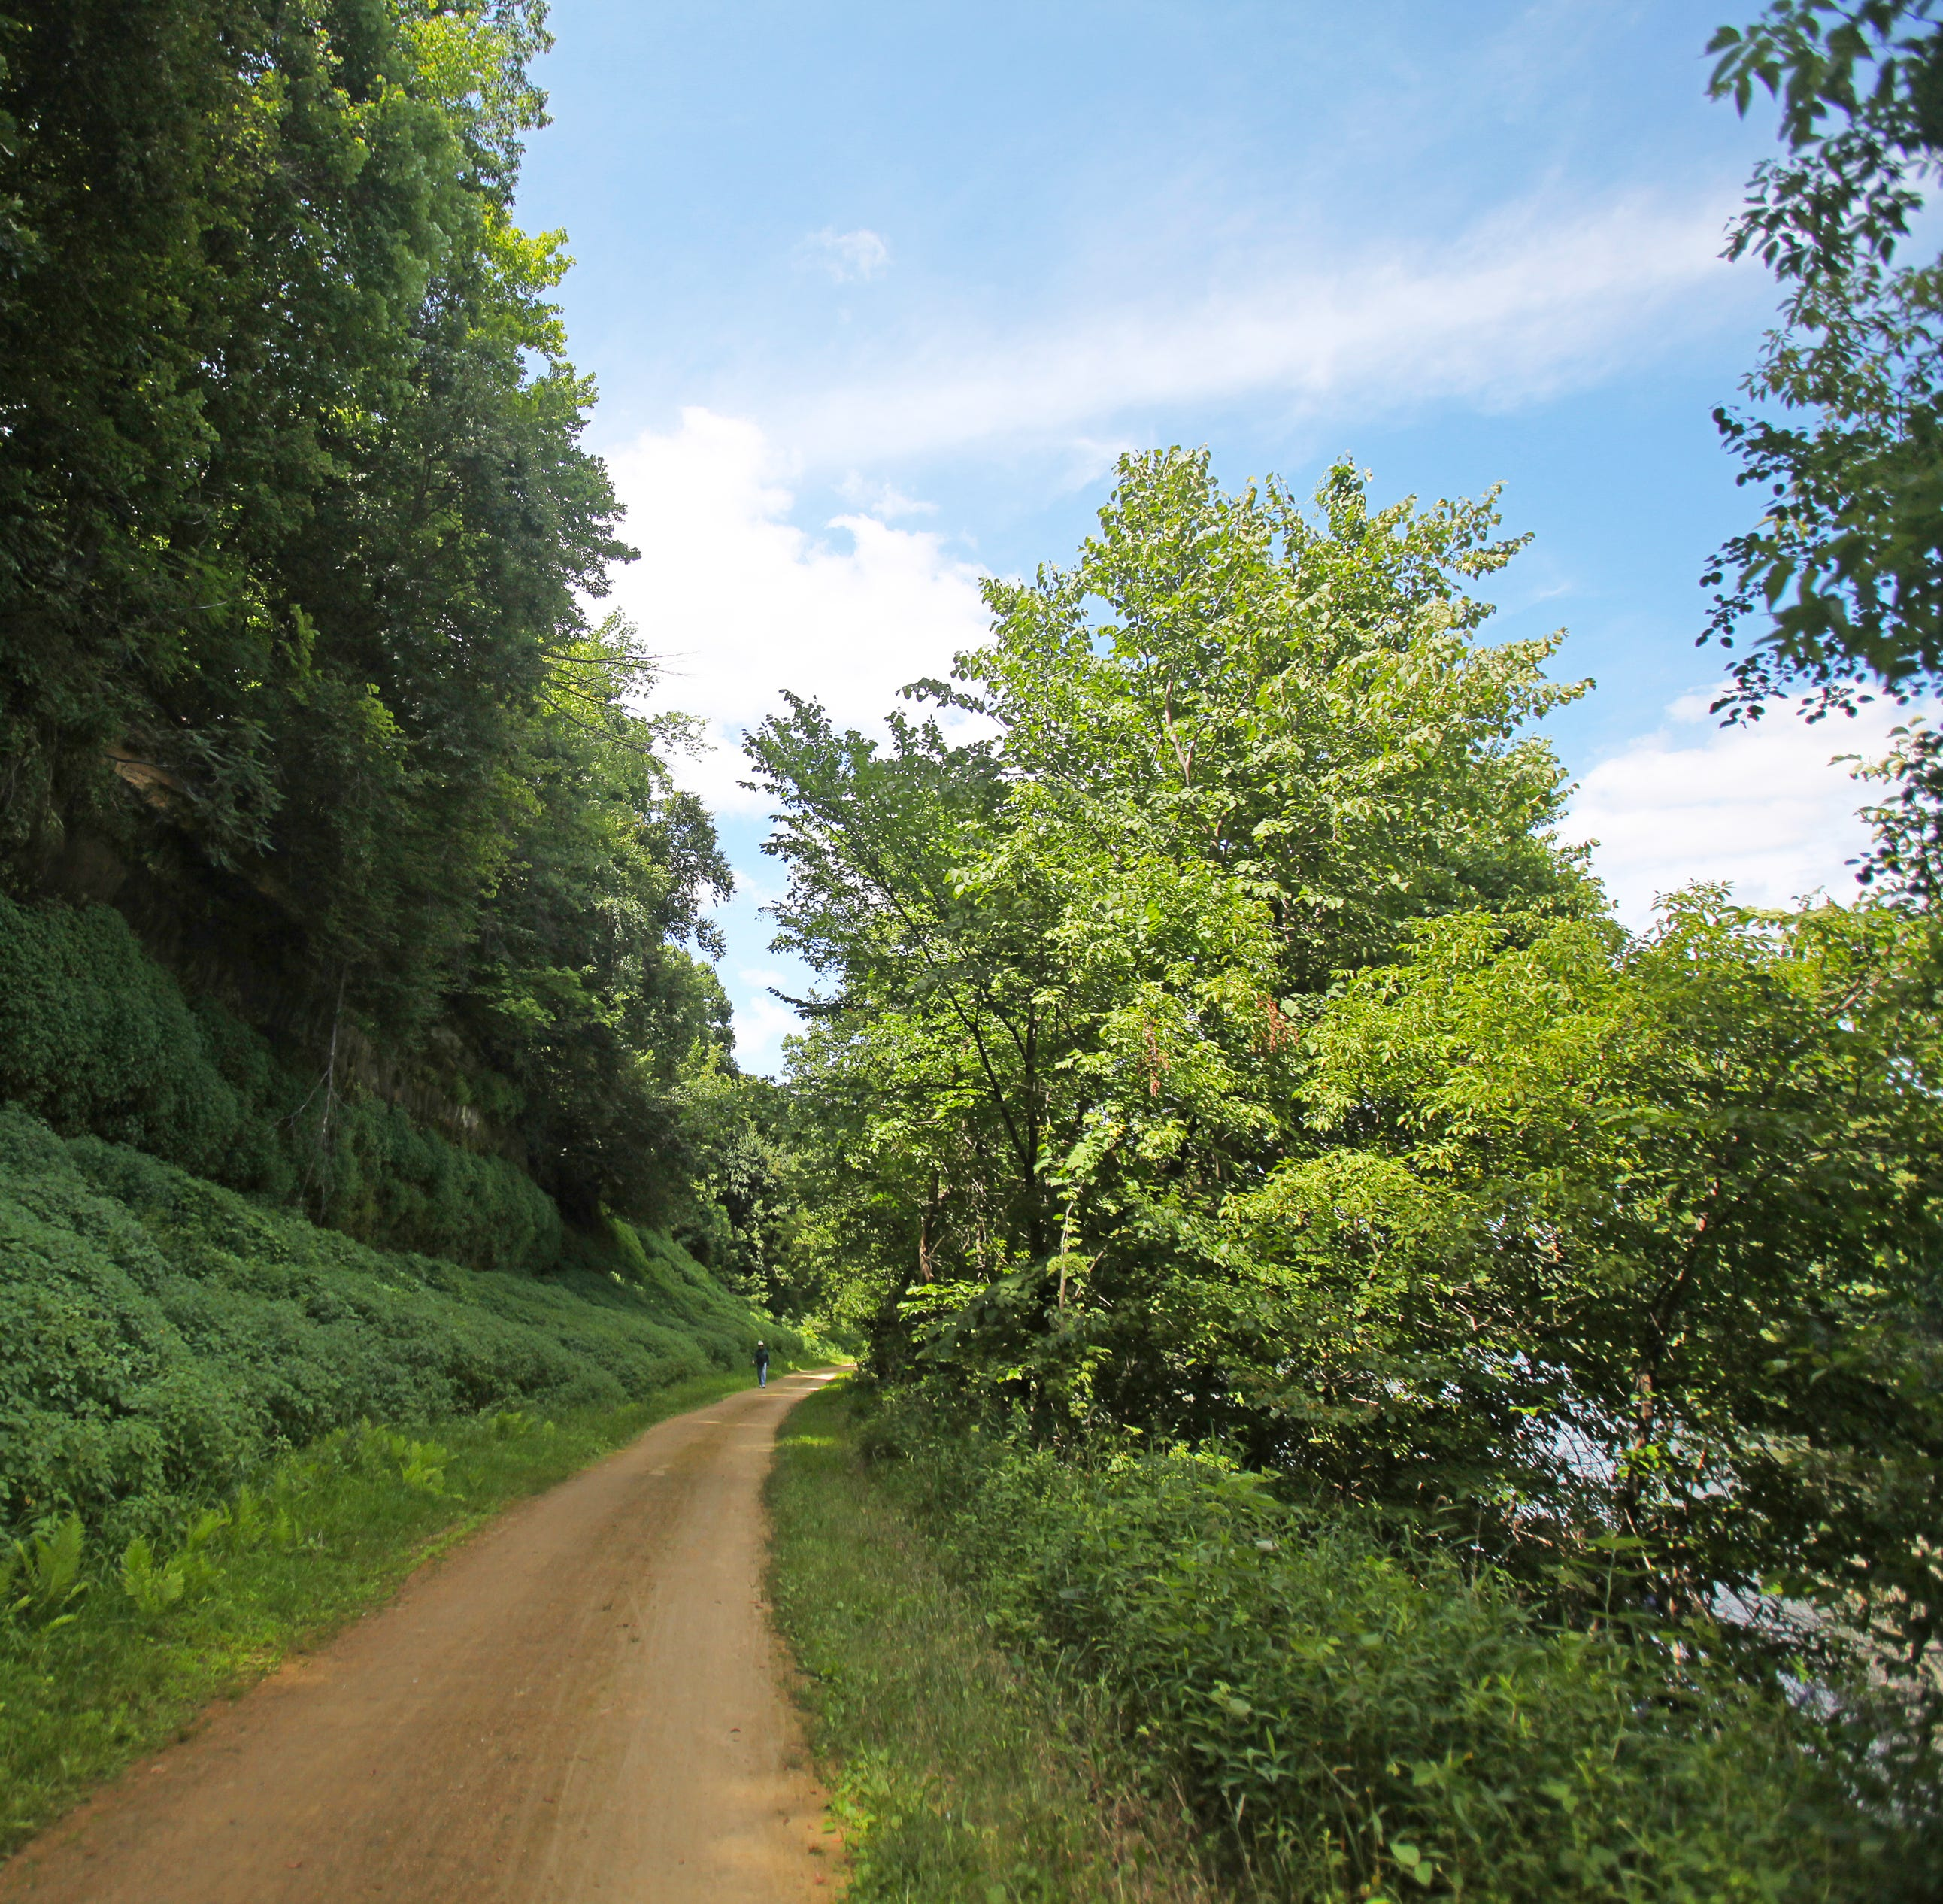 Bike trails, breweries and a charming B&B make for a relaxing rural getaway in the Menomonie area